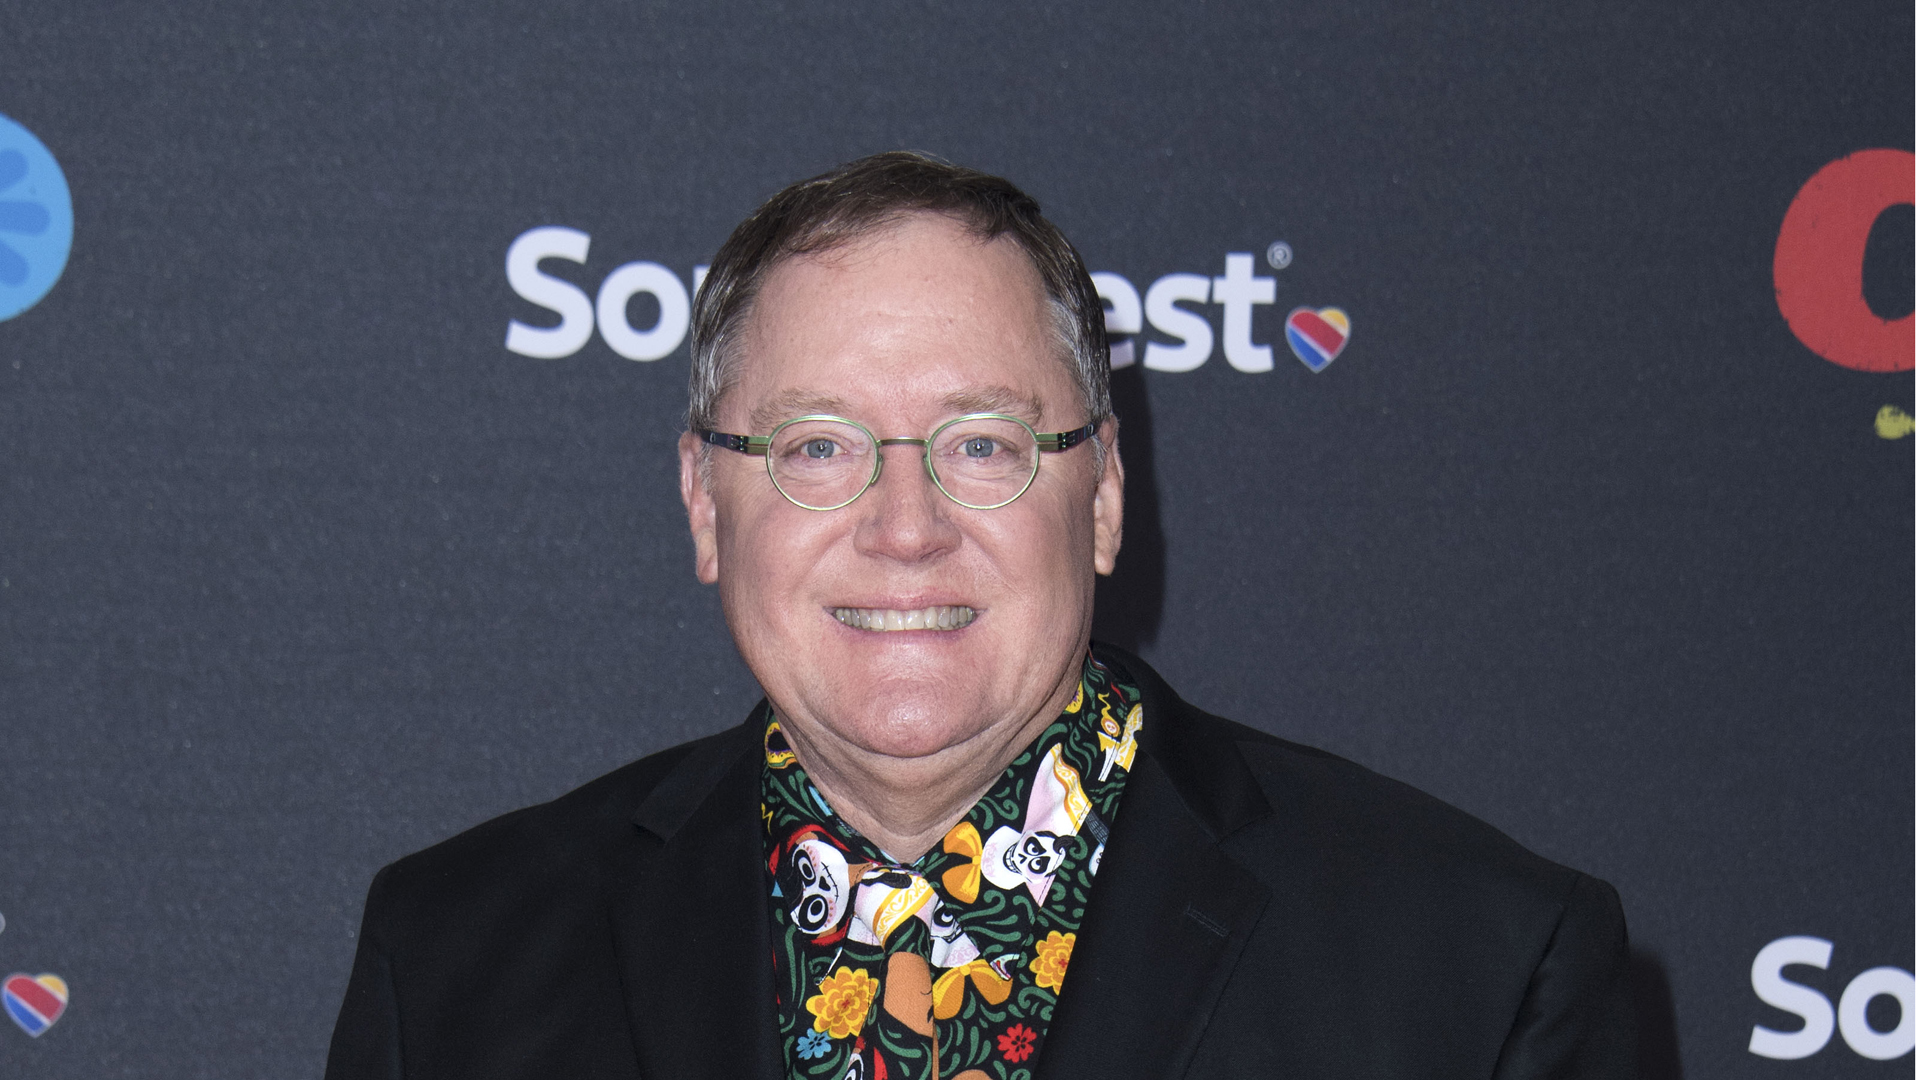 Executive producer John Lasseter attends the Disney Pixar's COCO premiere on November 8, 2017, in Hollywood. (Credit:Valerie Macon/AFP/Getty Images)